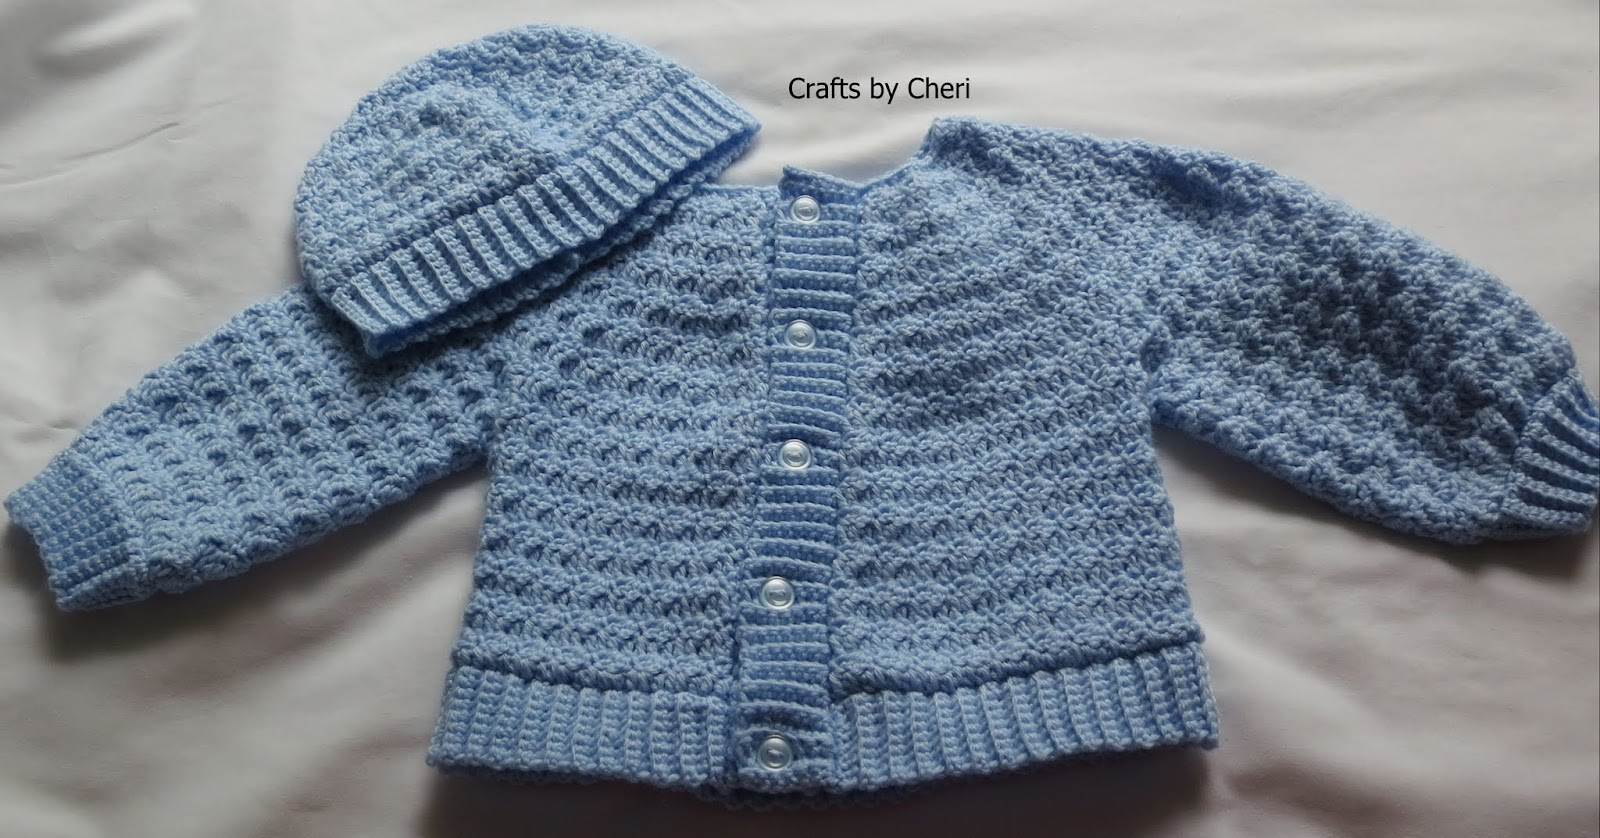 Cheri S Crochet Baby Or Reborn Baby Doll Clothing Or